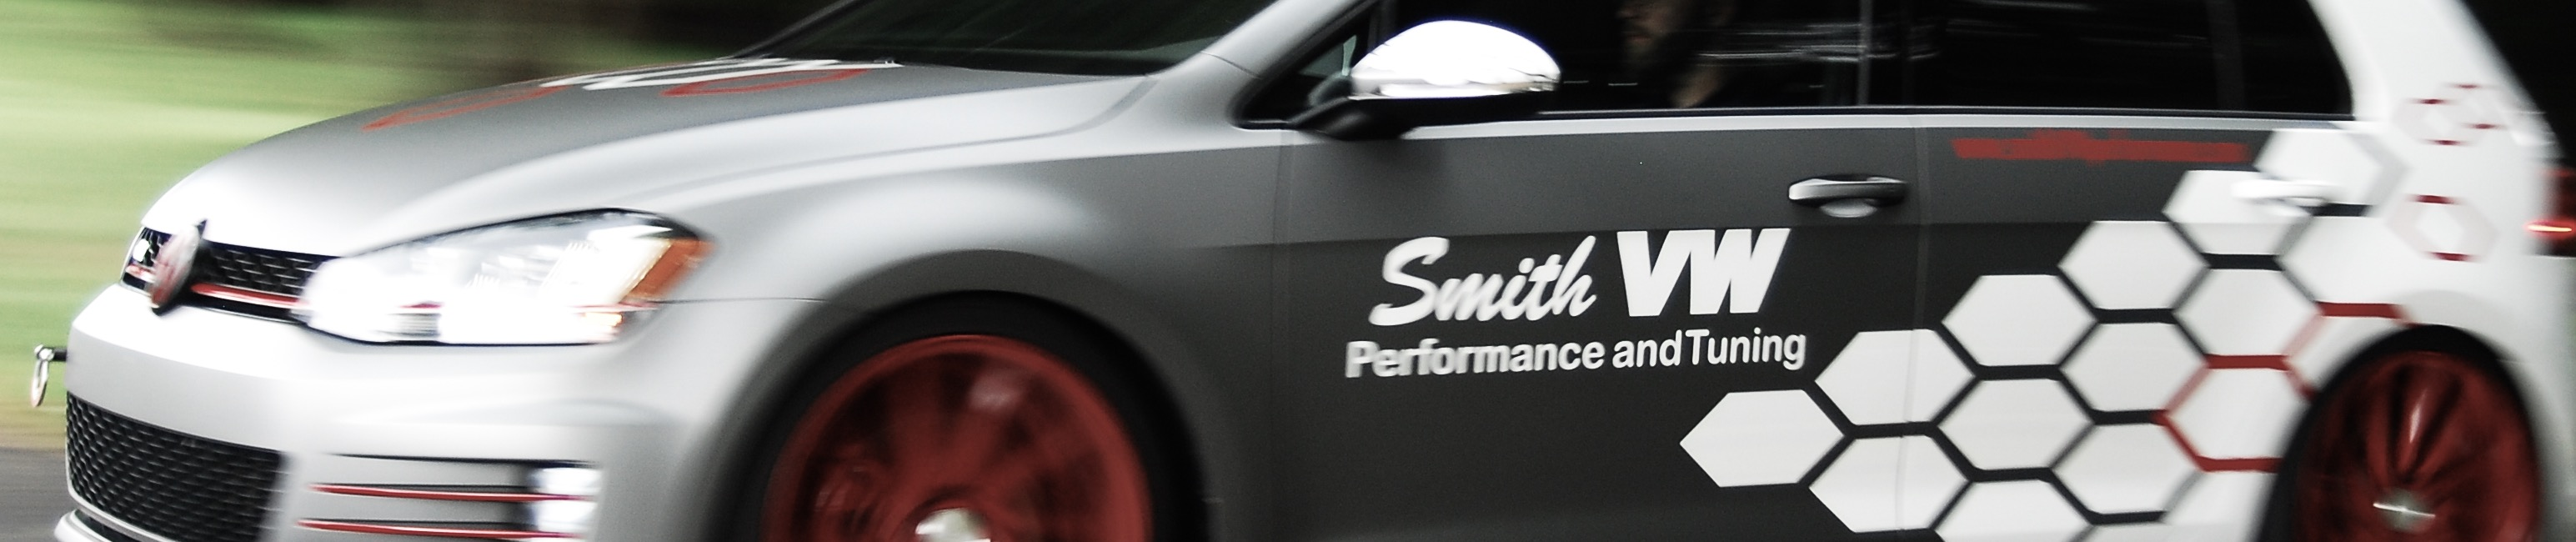 Smith VW Performance Parts